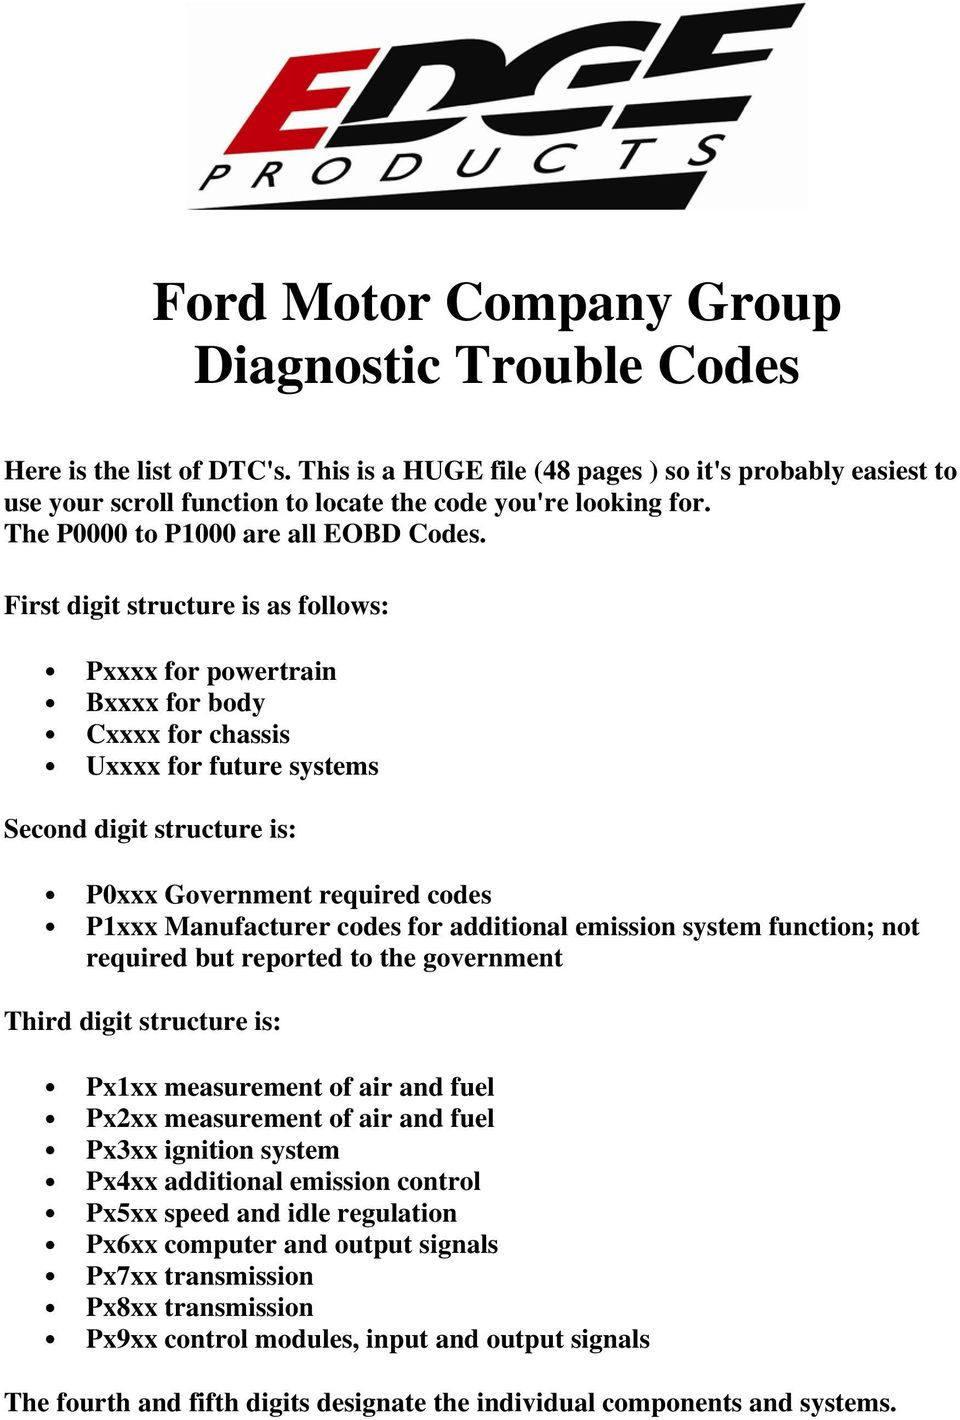 Ford Motor Company Group Diagnostic Trouble Codes - PDF